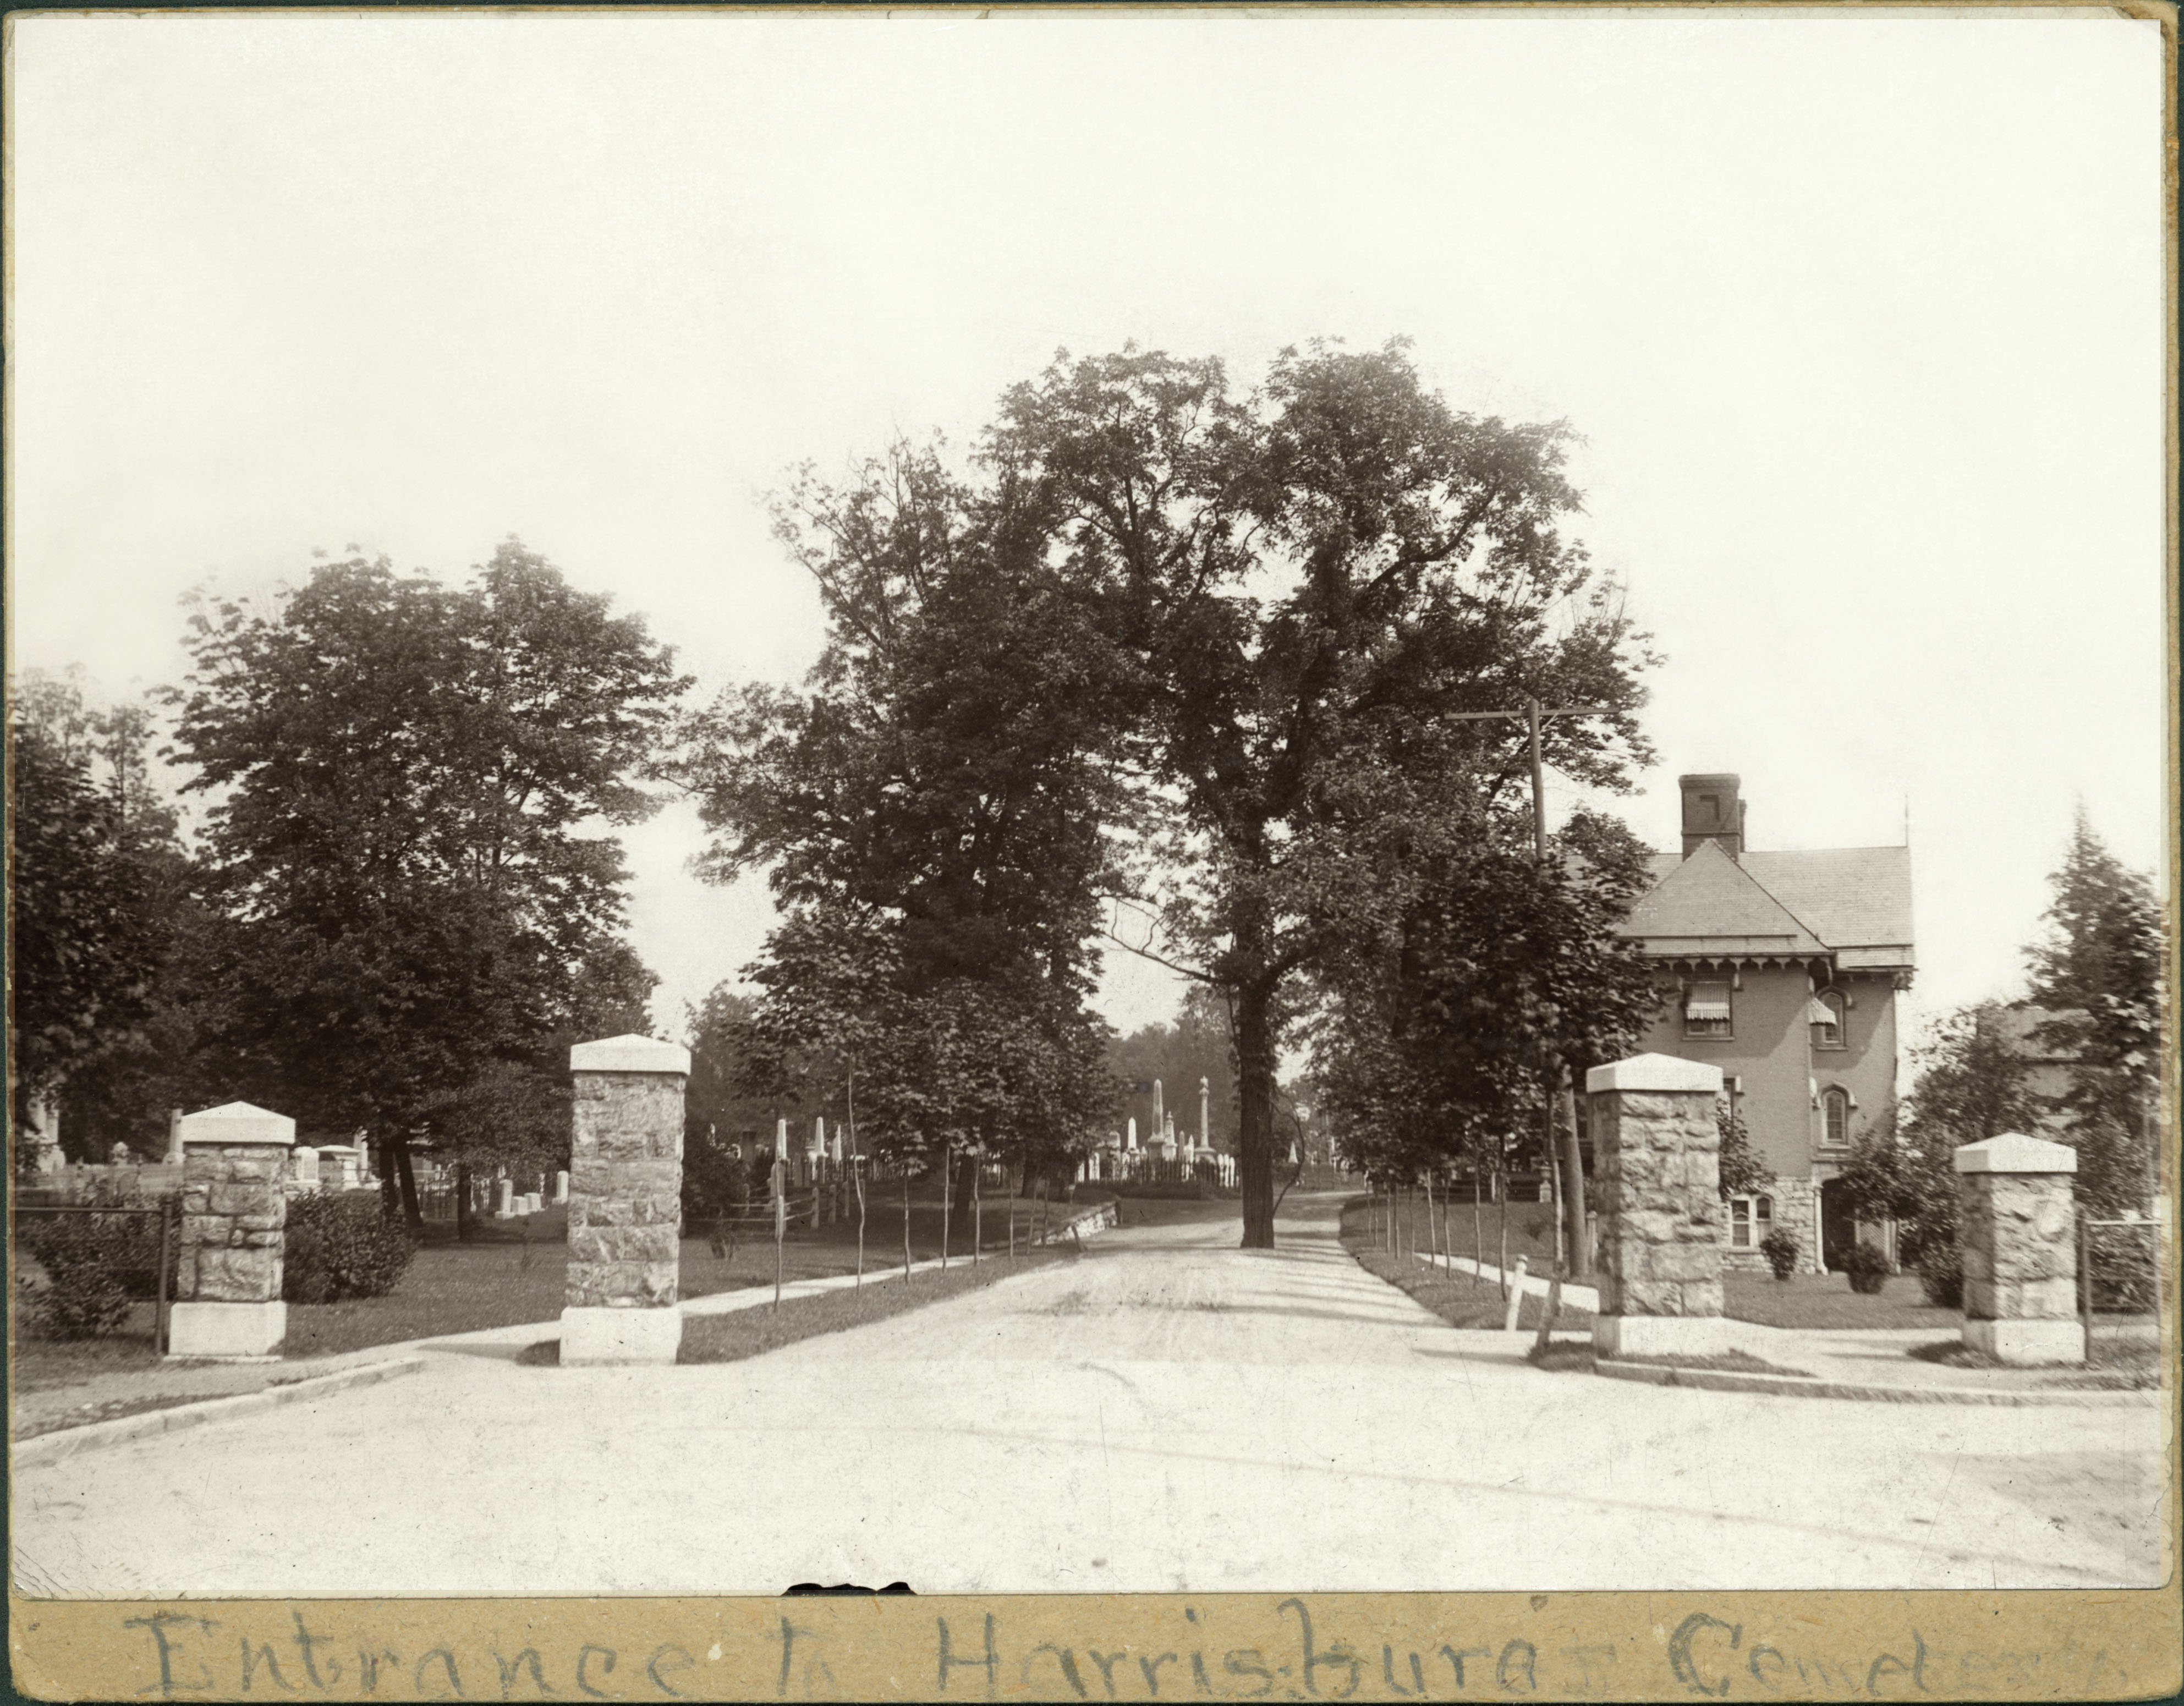 The same entrance from a c.1920 photograph.